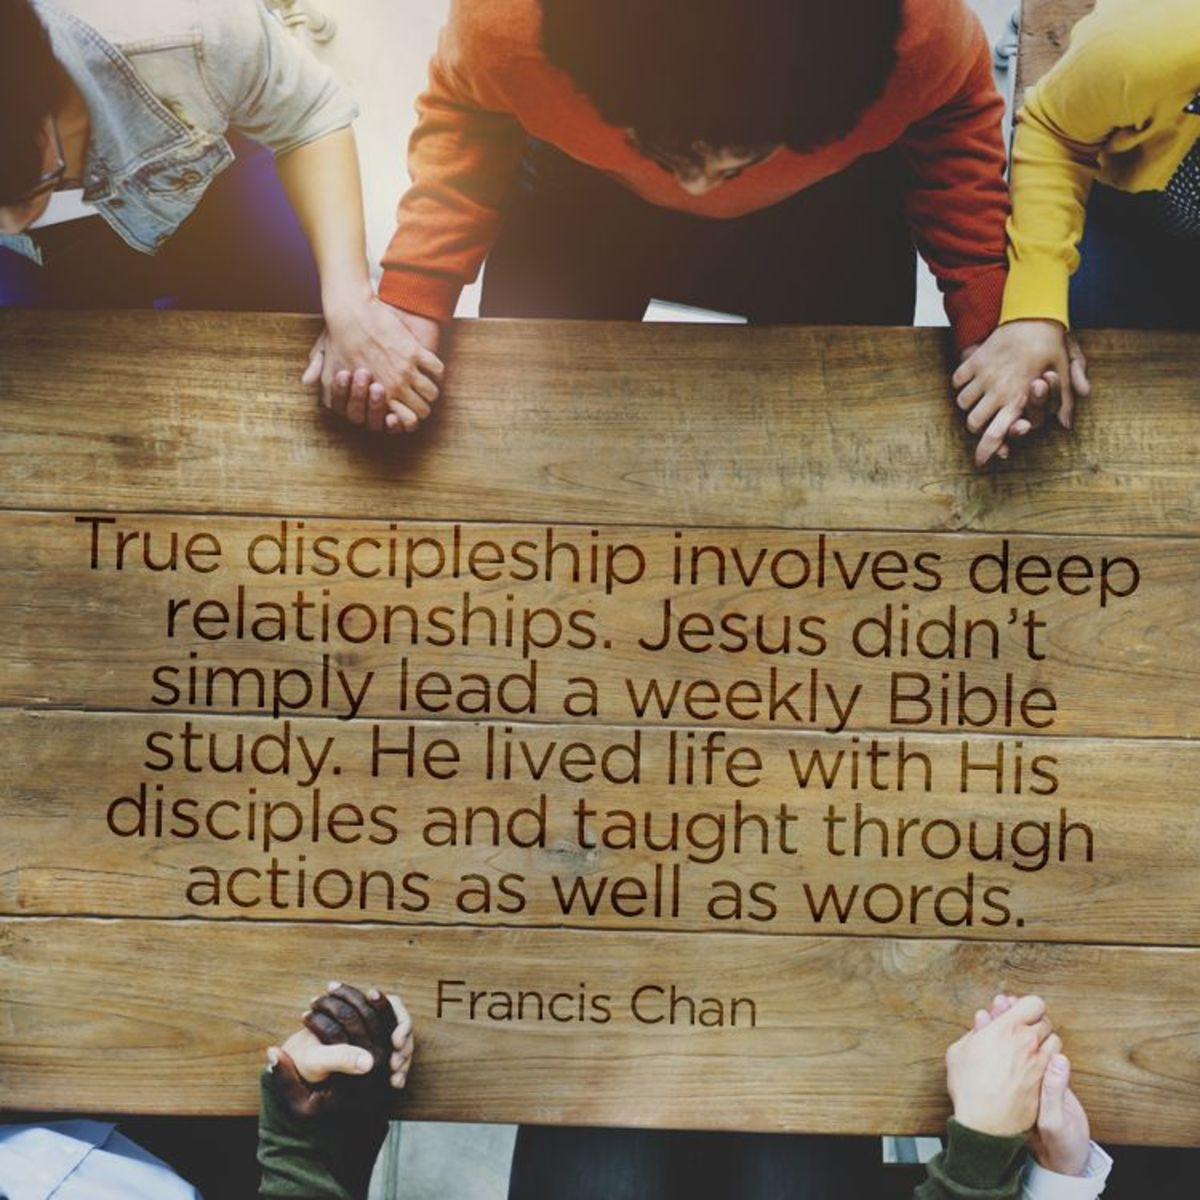 influence-of-discipleship-on-the-spiritual-growth-of-christians